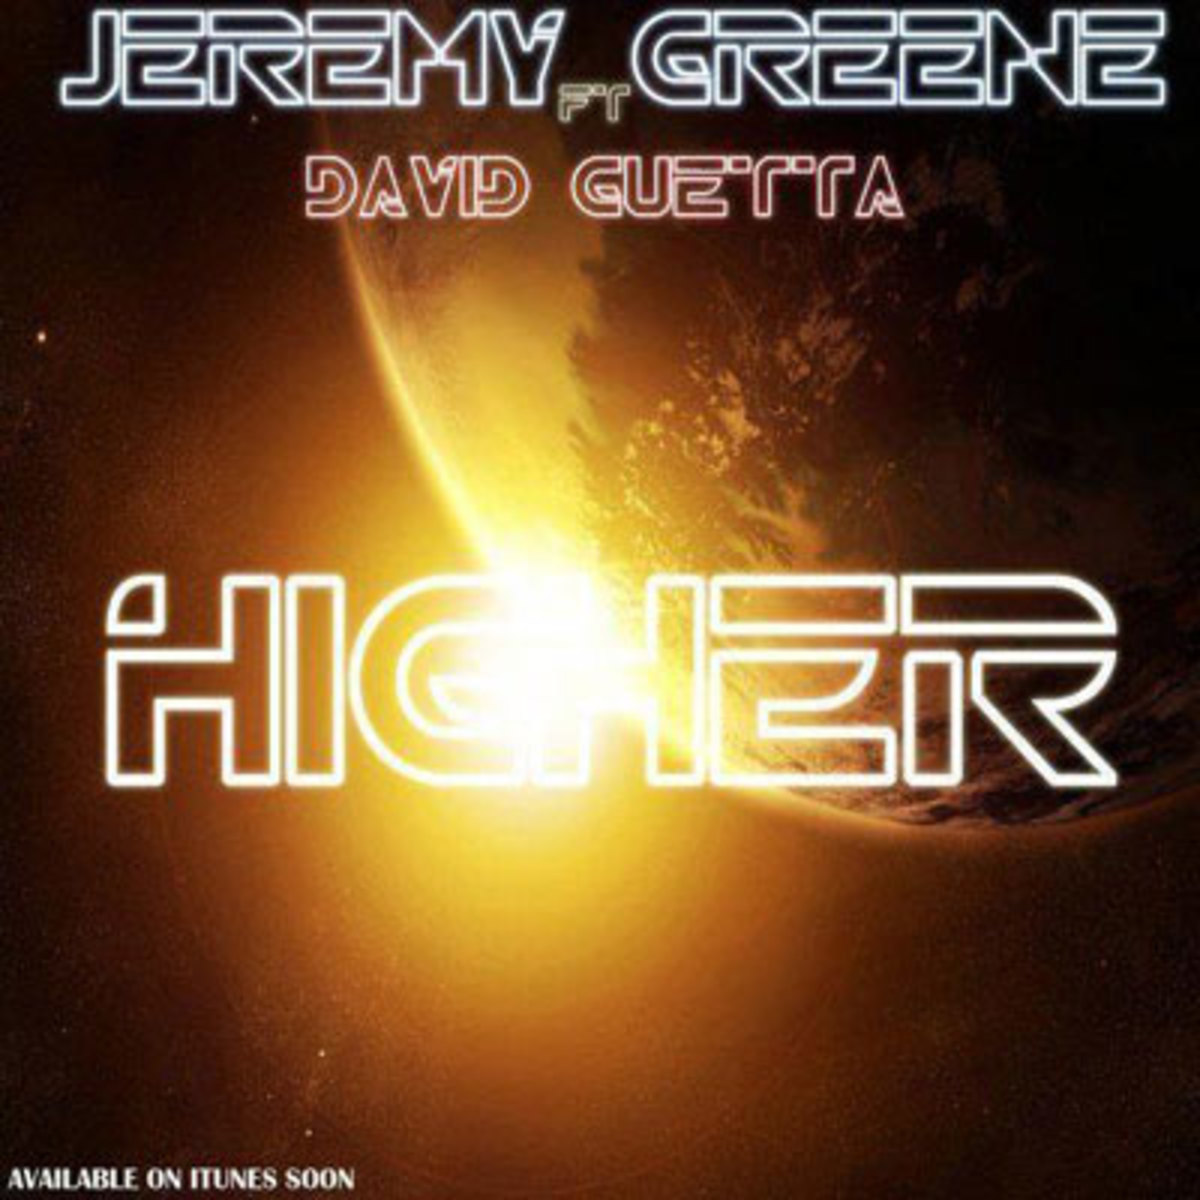 jeremygreene-higher.jpg